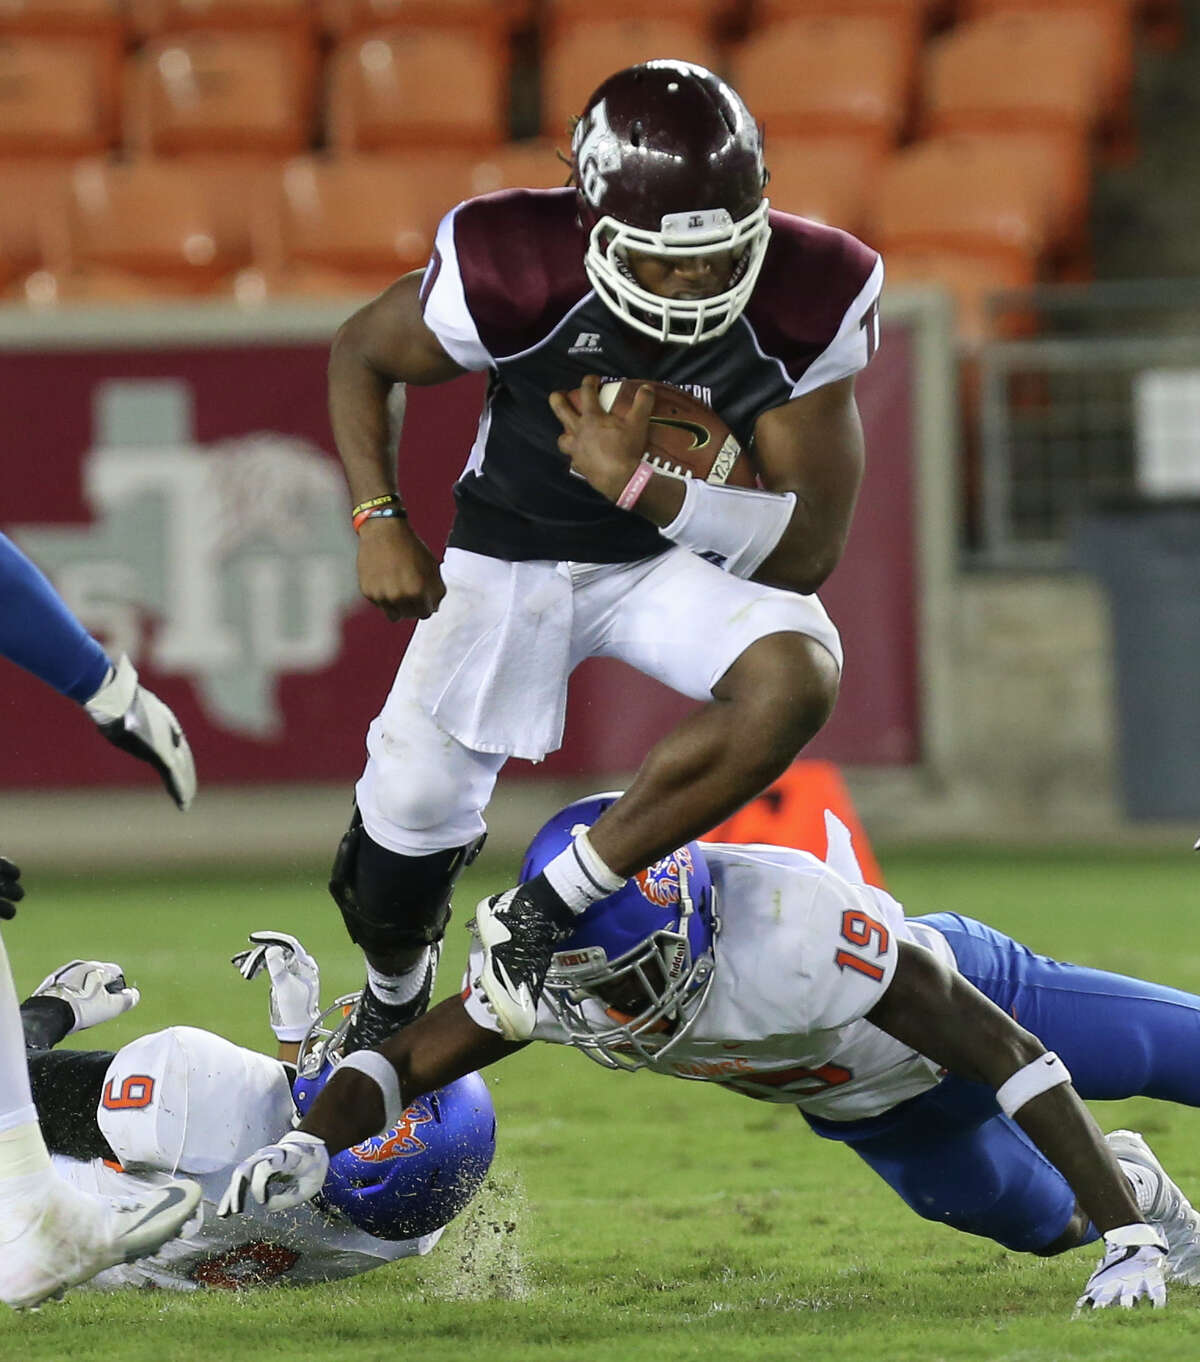 Texas Southern Tigers quarterback Jay Christophe (11) carries the ball and jumps over Houston Baptist Huskies players that are trying to tackle him during the third quarter of the game at BBVA Compass Stadium Thursday, Sept. 7, 2017, in Houston. ( Yi-Chin Lee / Houston Chronicle )